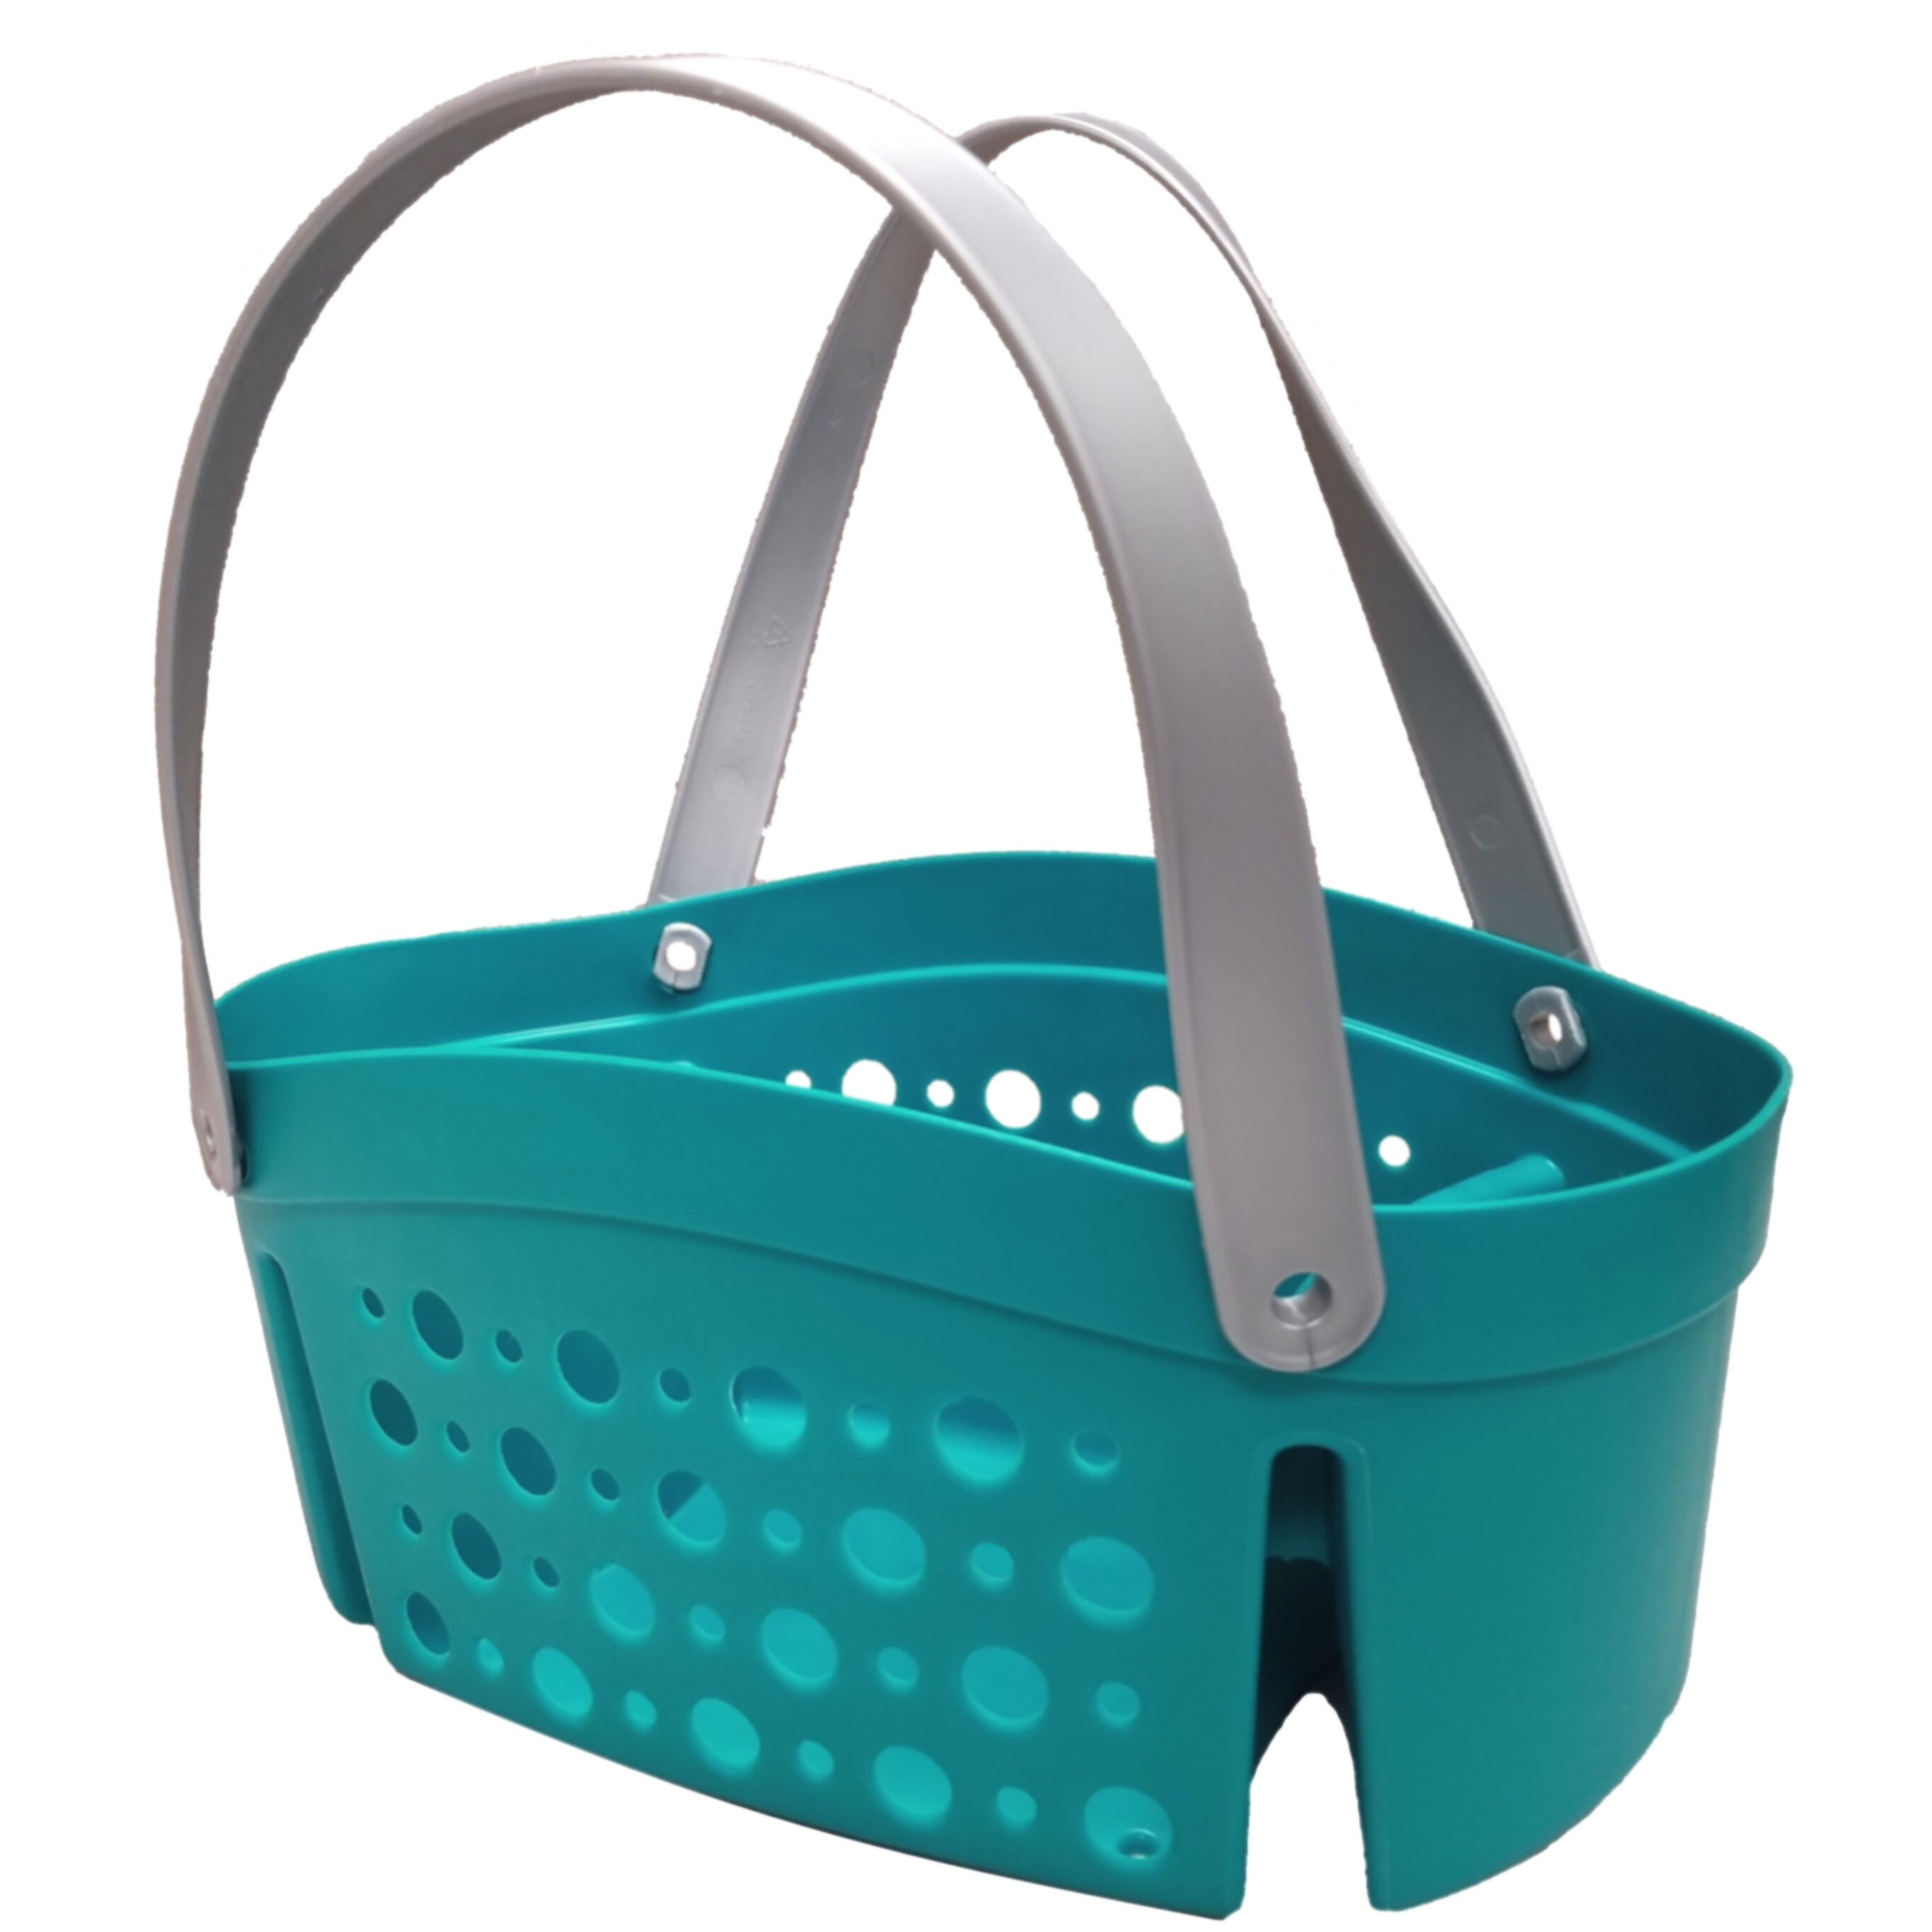 Rebrilliant Flex Tote Shower Caddy | Wayfair